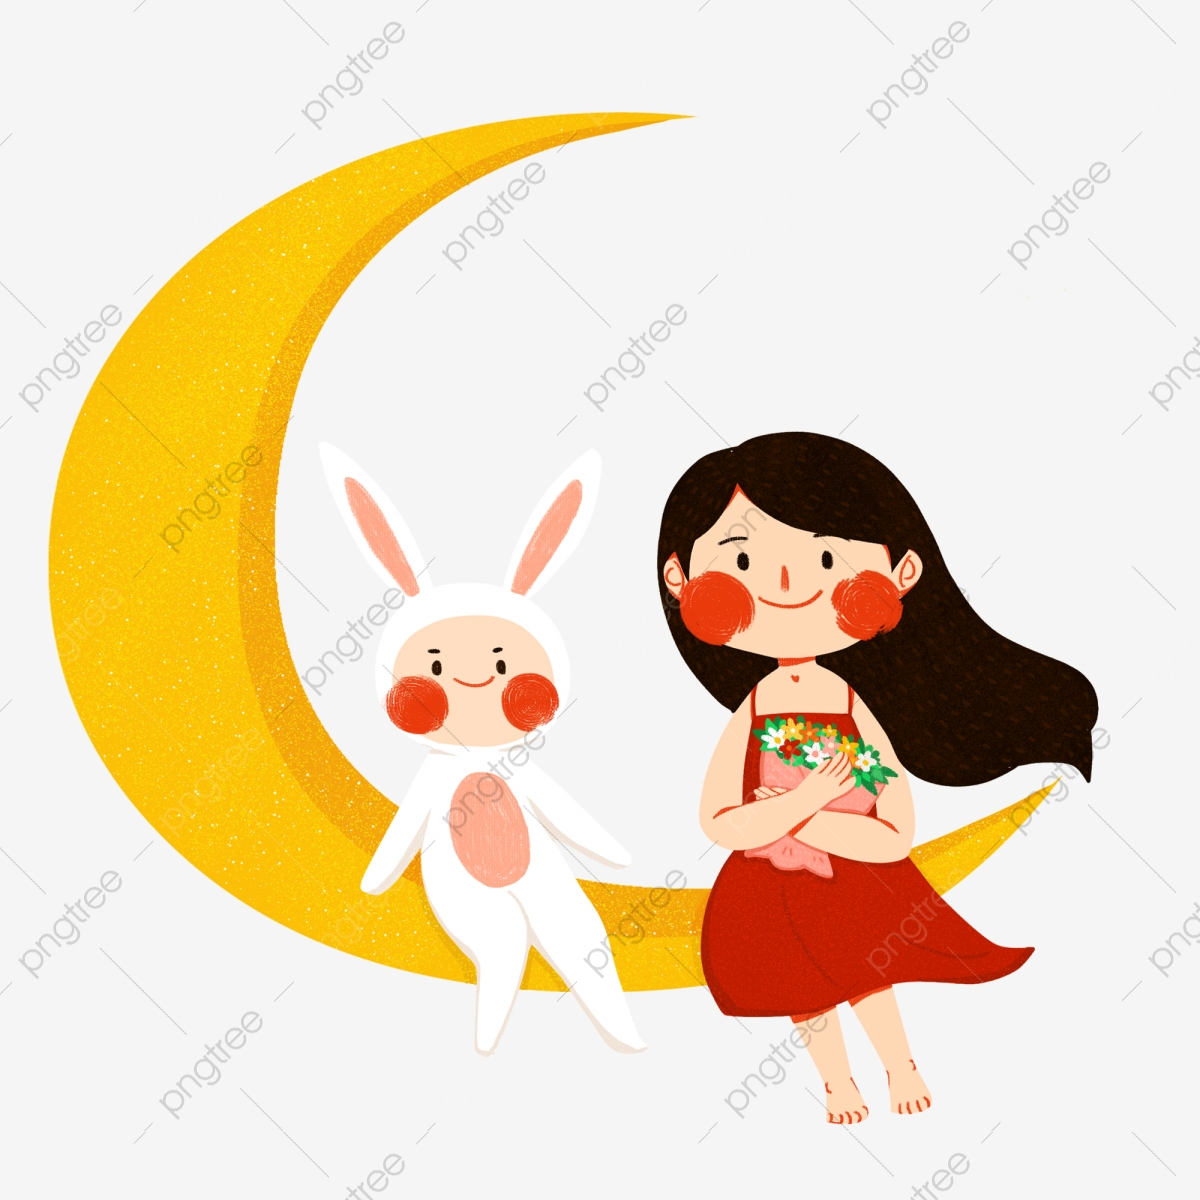 Hand drawn illustration of. Moon clipart kid png